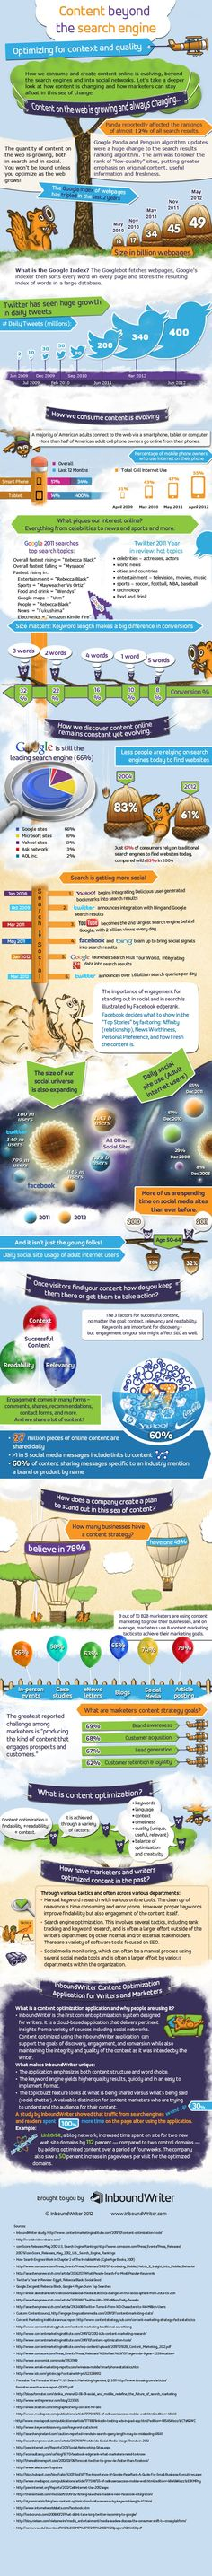 graphics  -- Content beyond the search engine